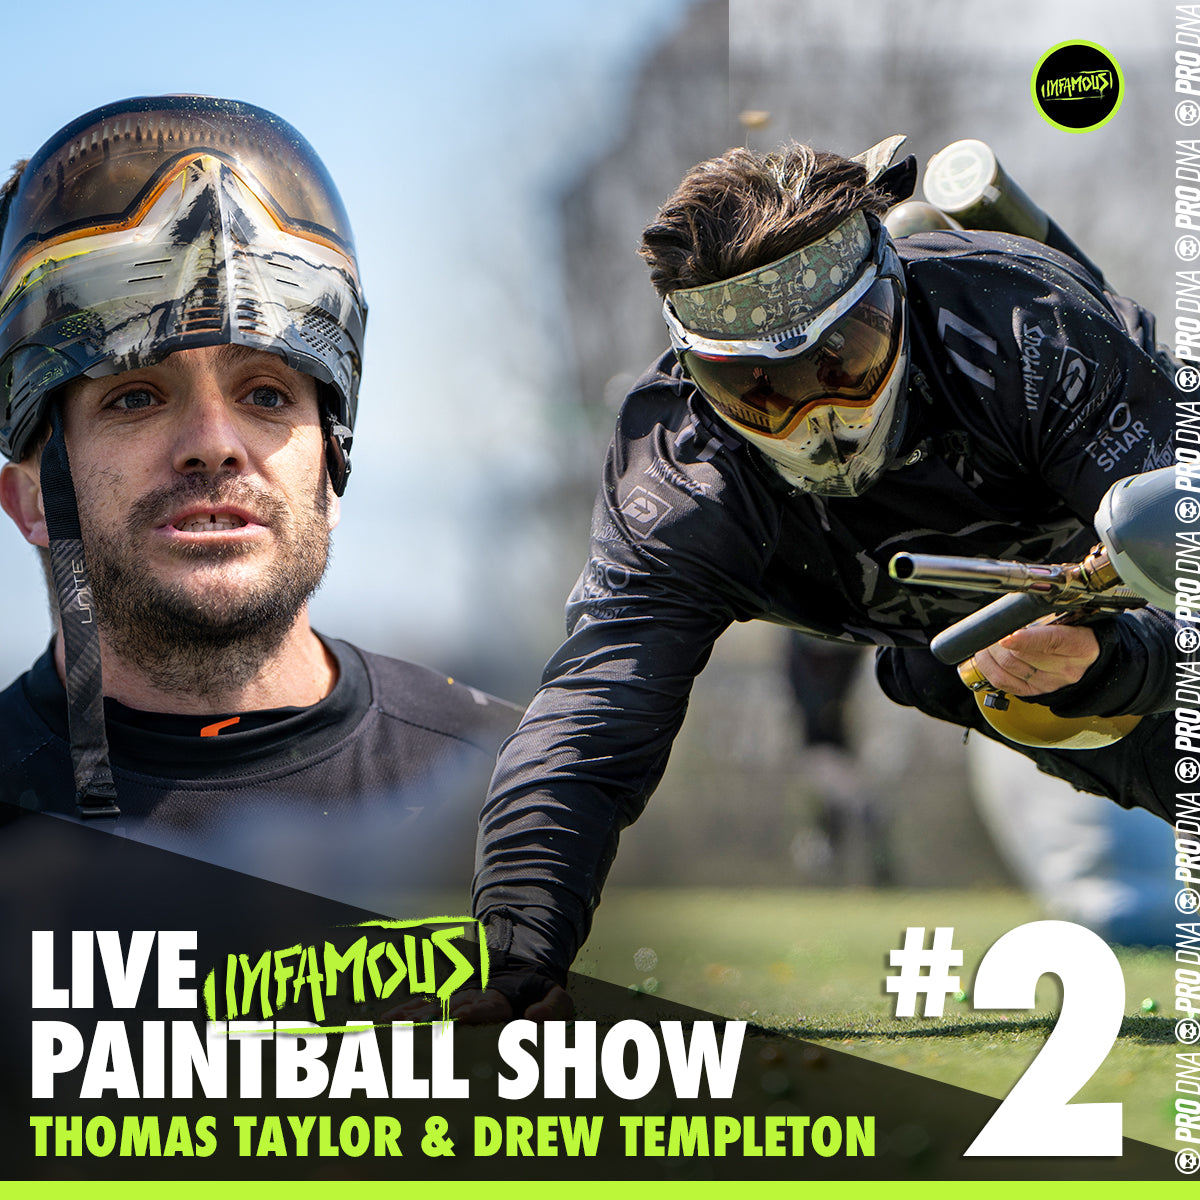 Infamous Live Paintball Show #2